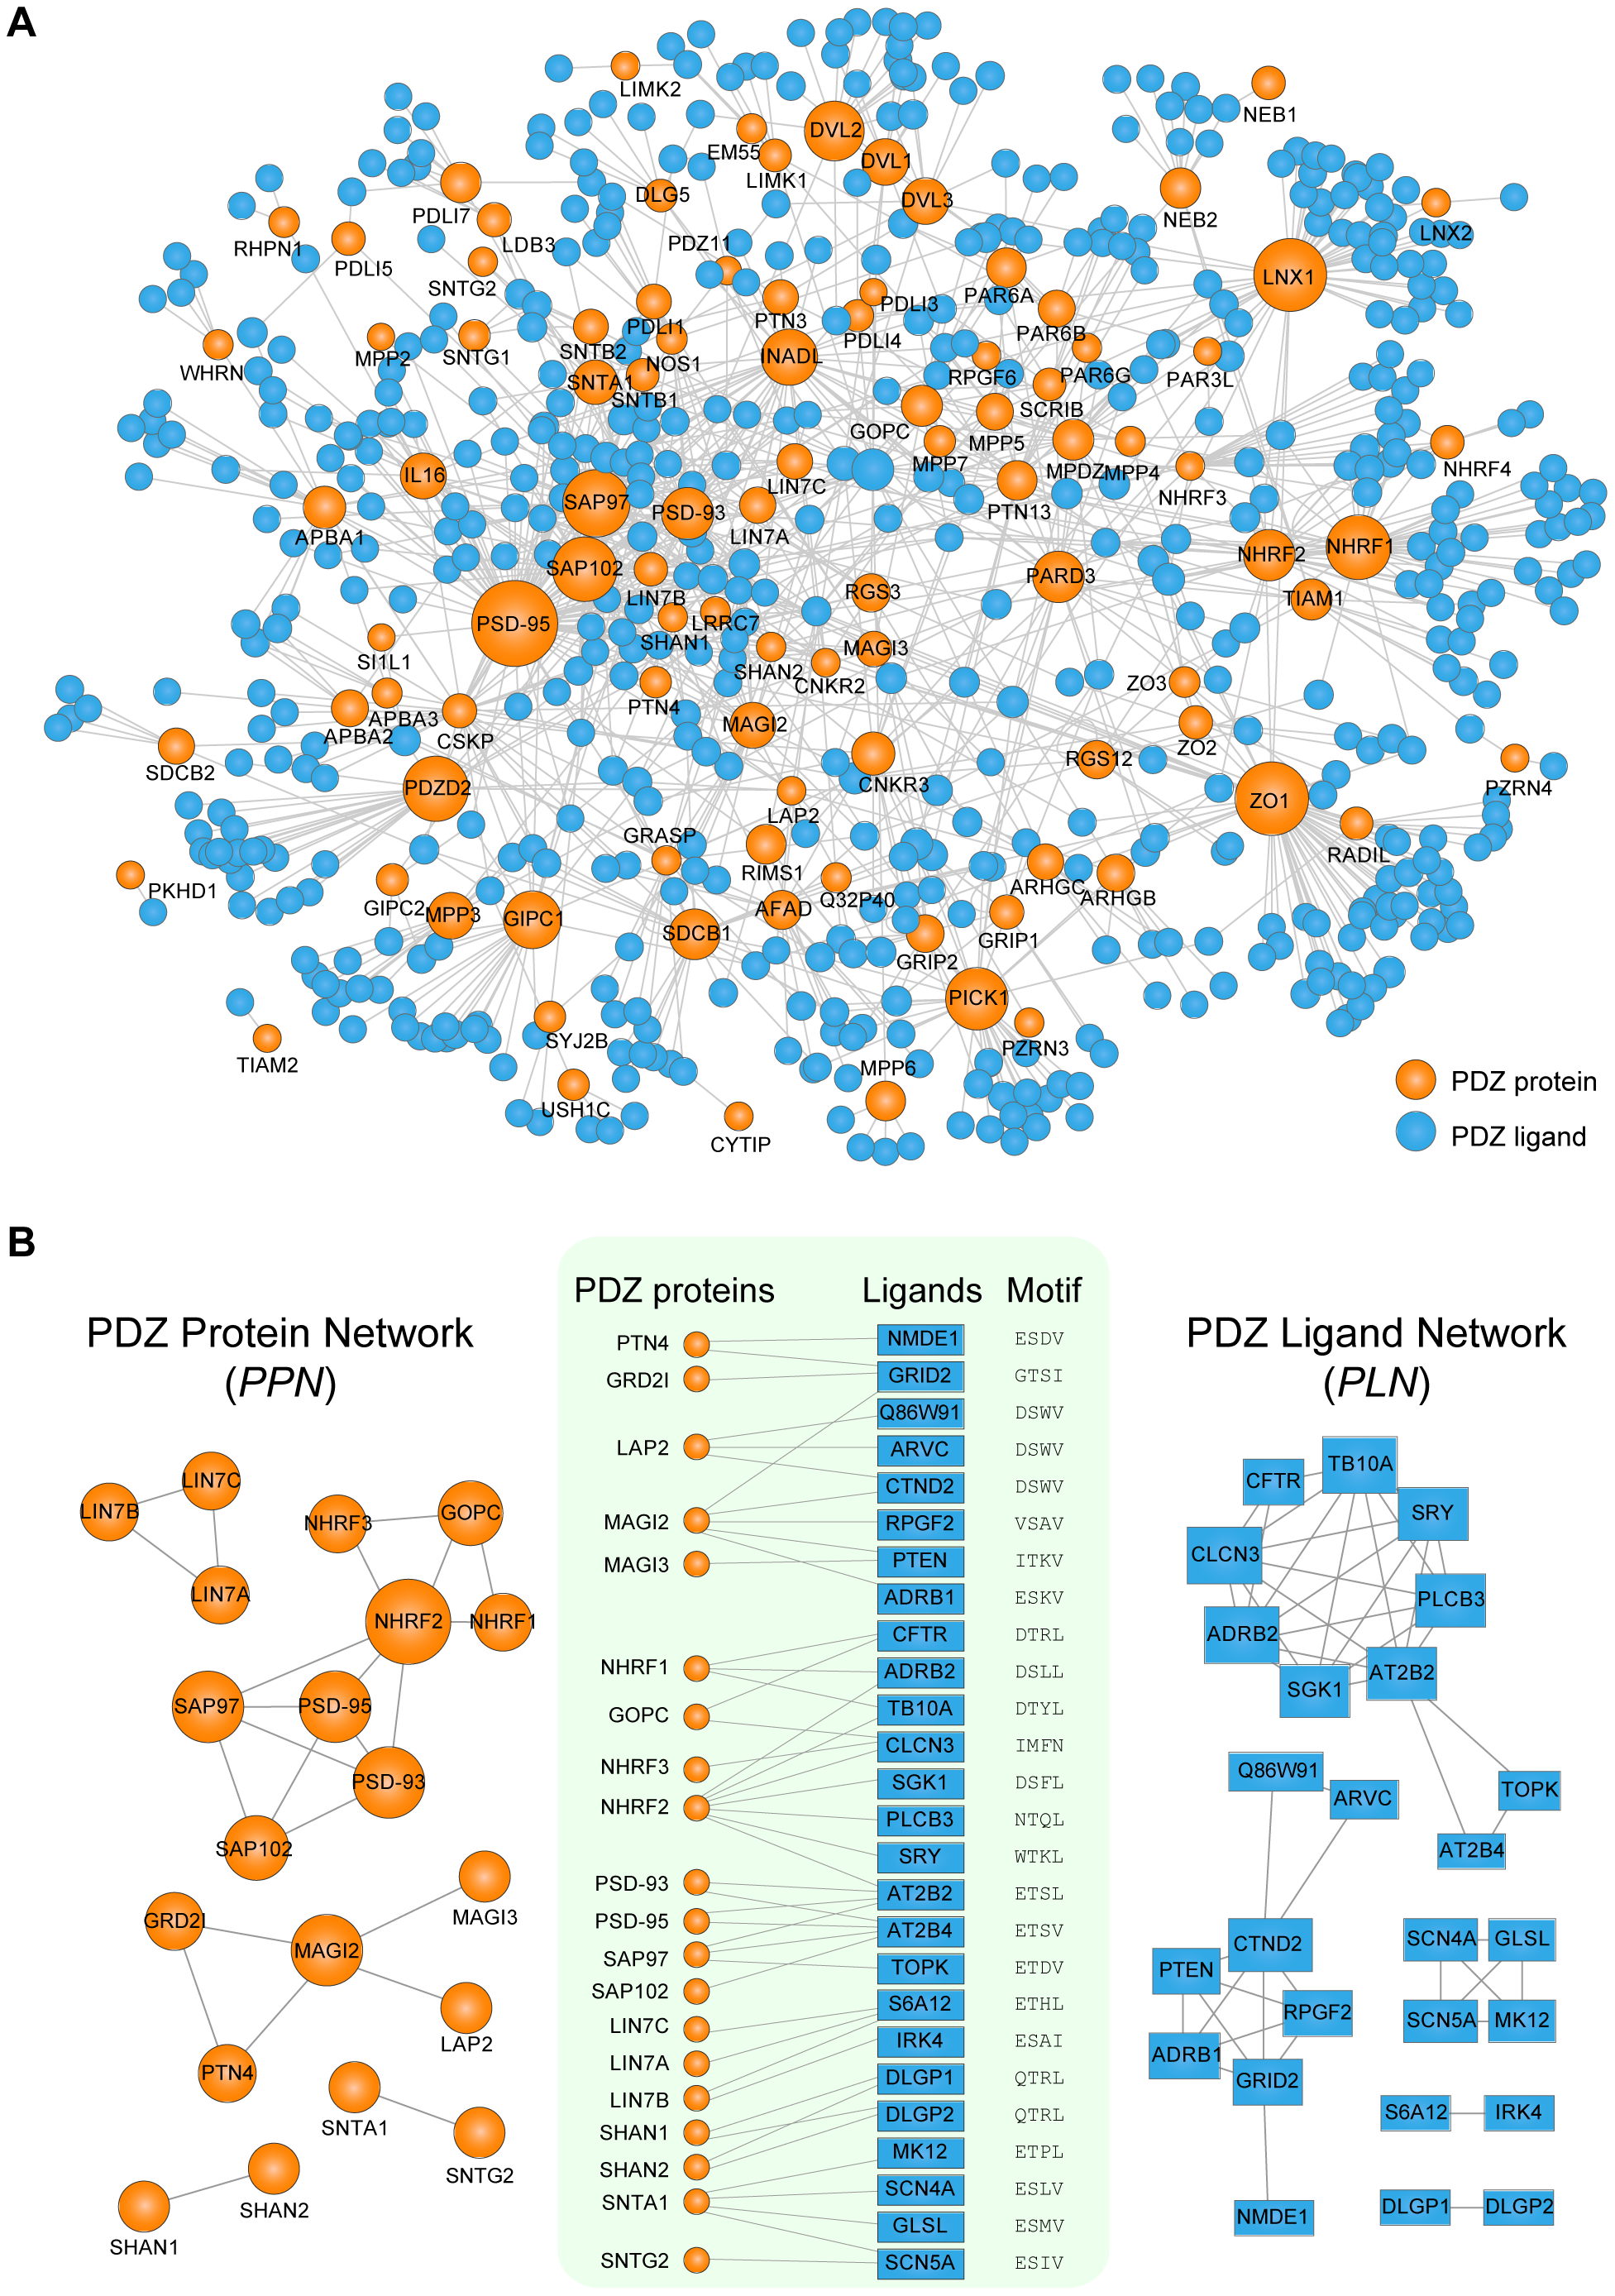 Network analyses of human PDZ protein-ligand interactions.